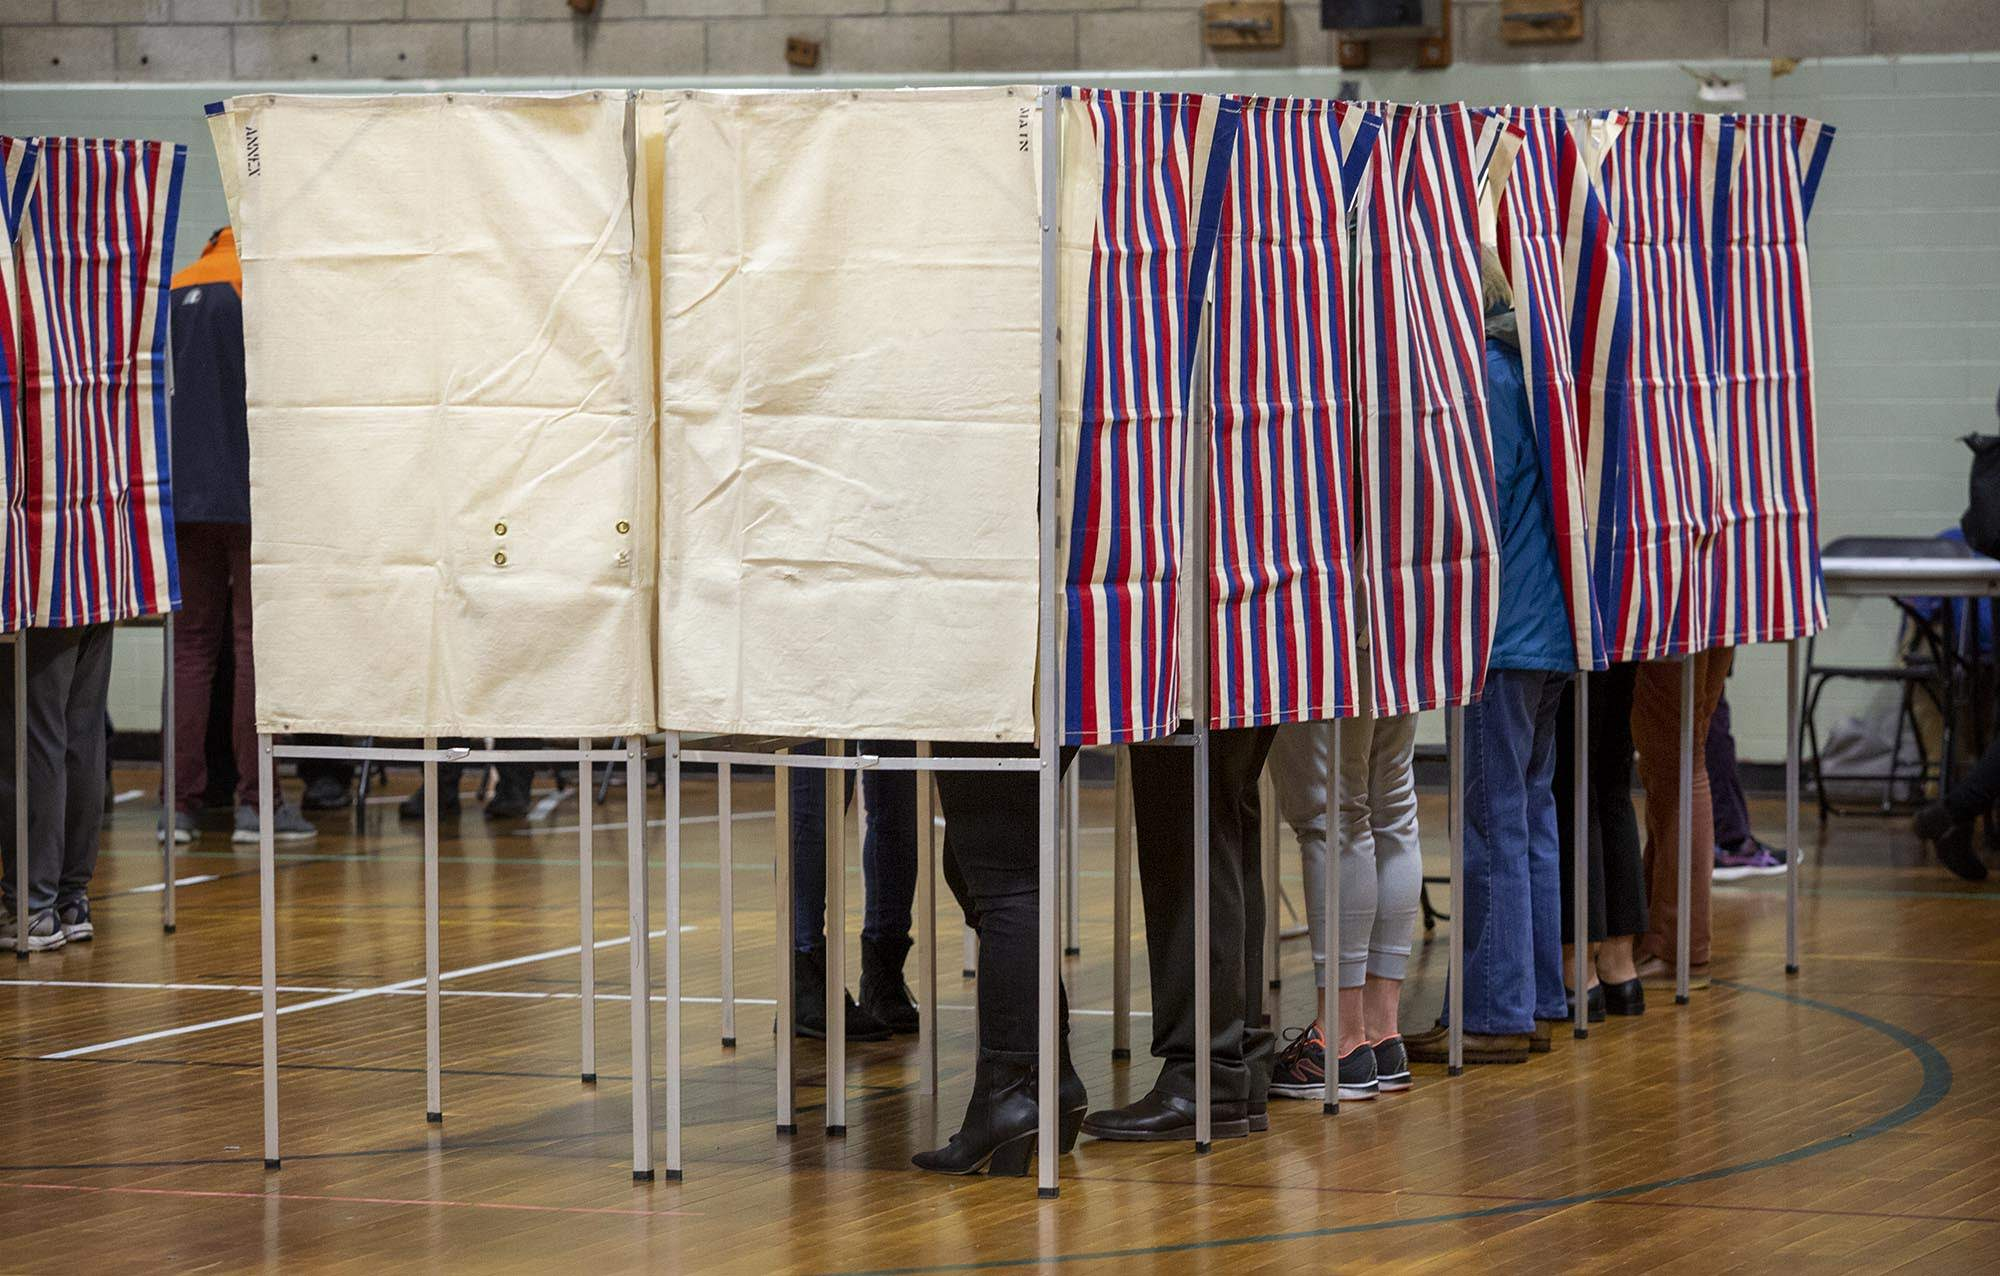 Voters fill the booths at Graham and Parks School in Cambridge, as primary elections get under way in Massachusetts. (Robin Lubbock/WBUR)